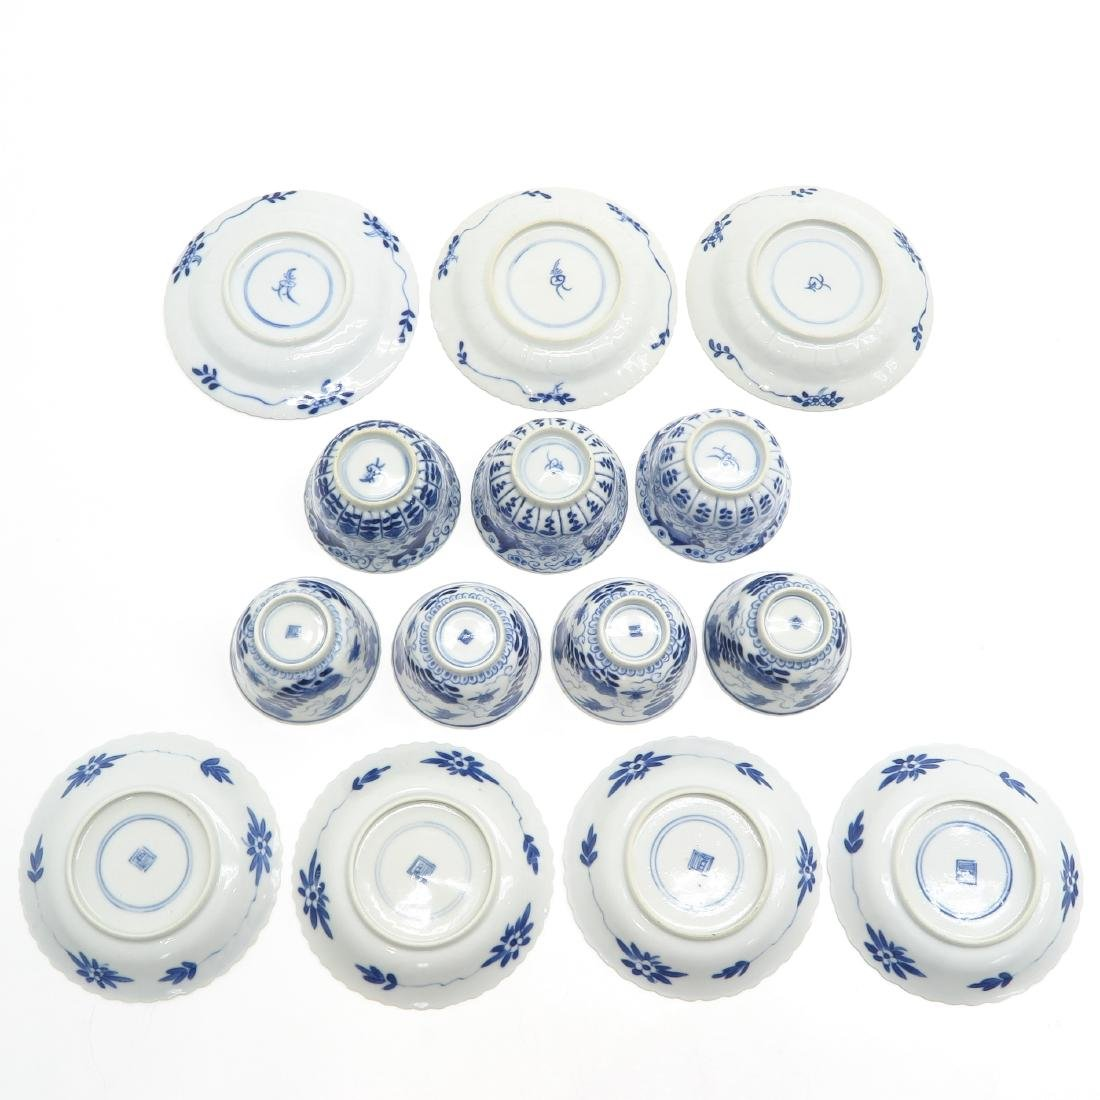 Diverse Lot of Cups and Saucers - 6